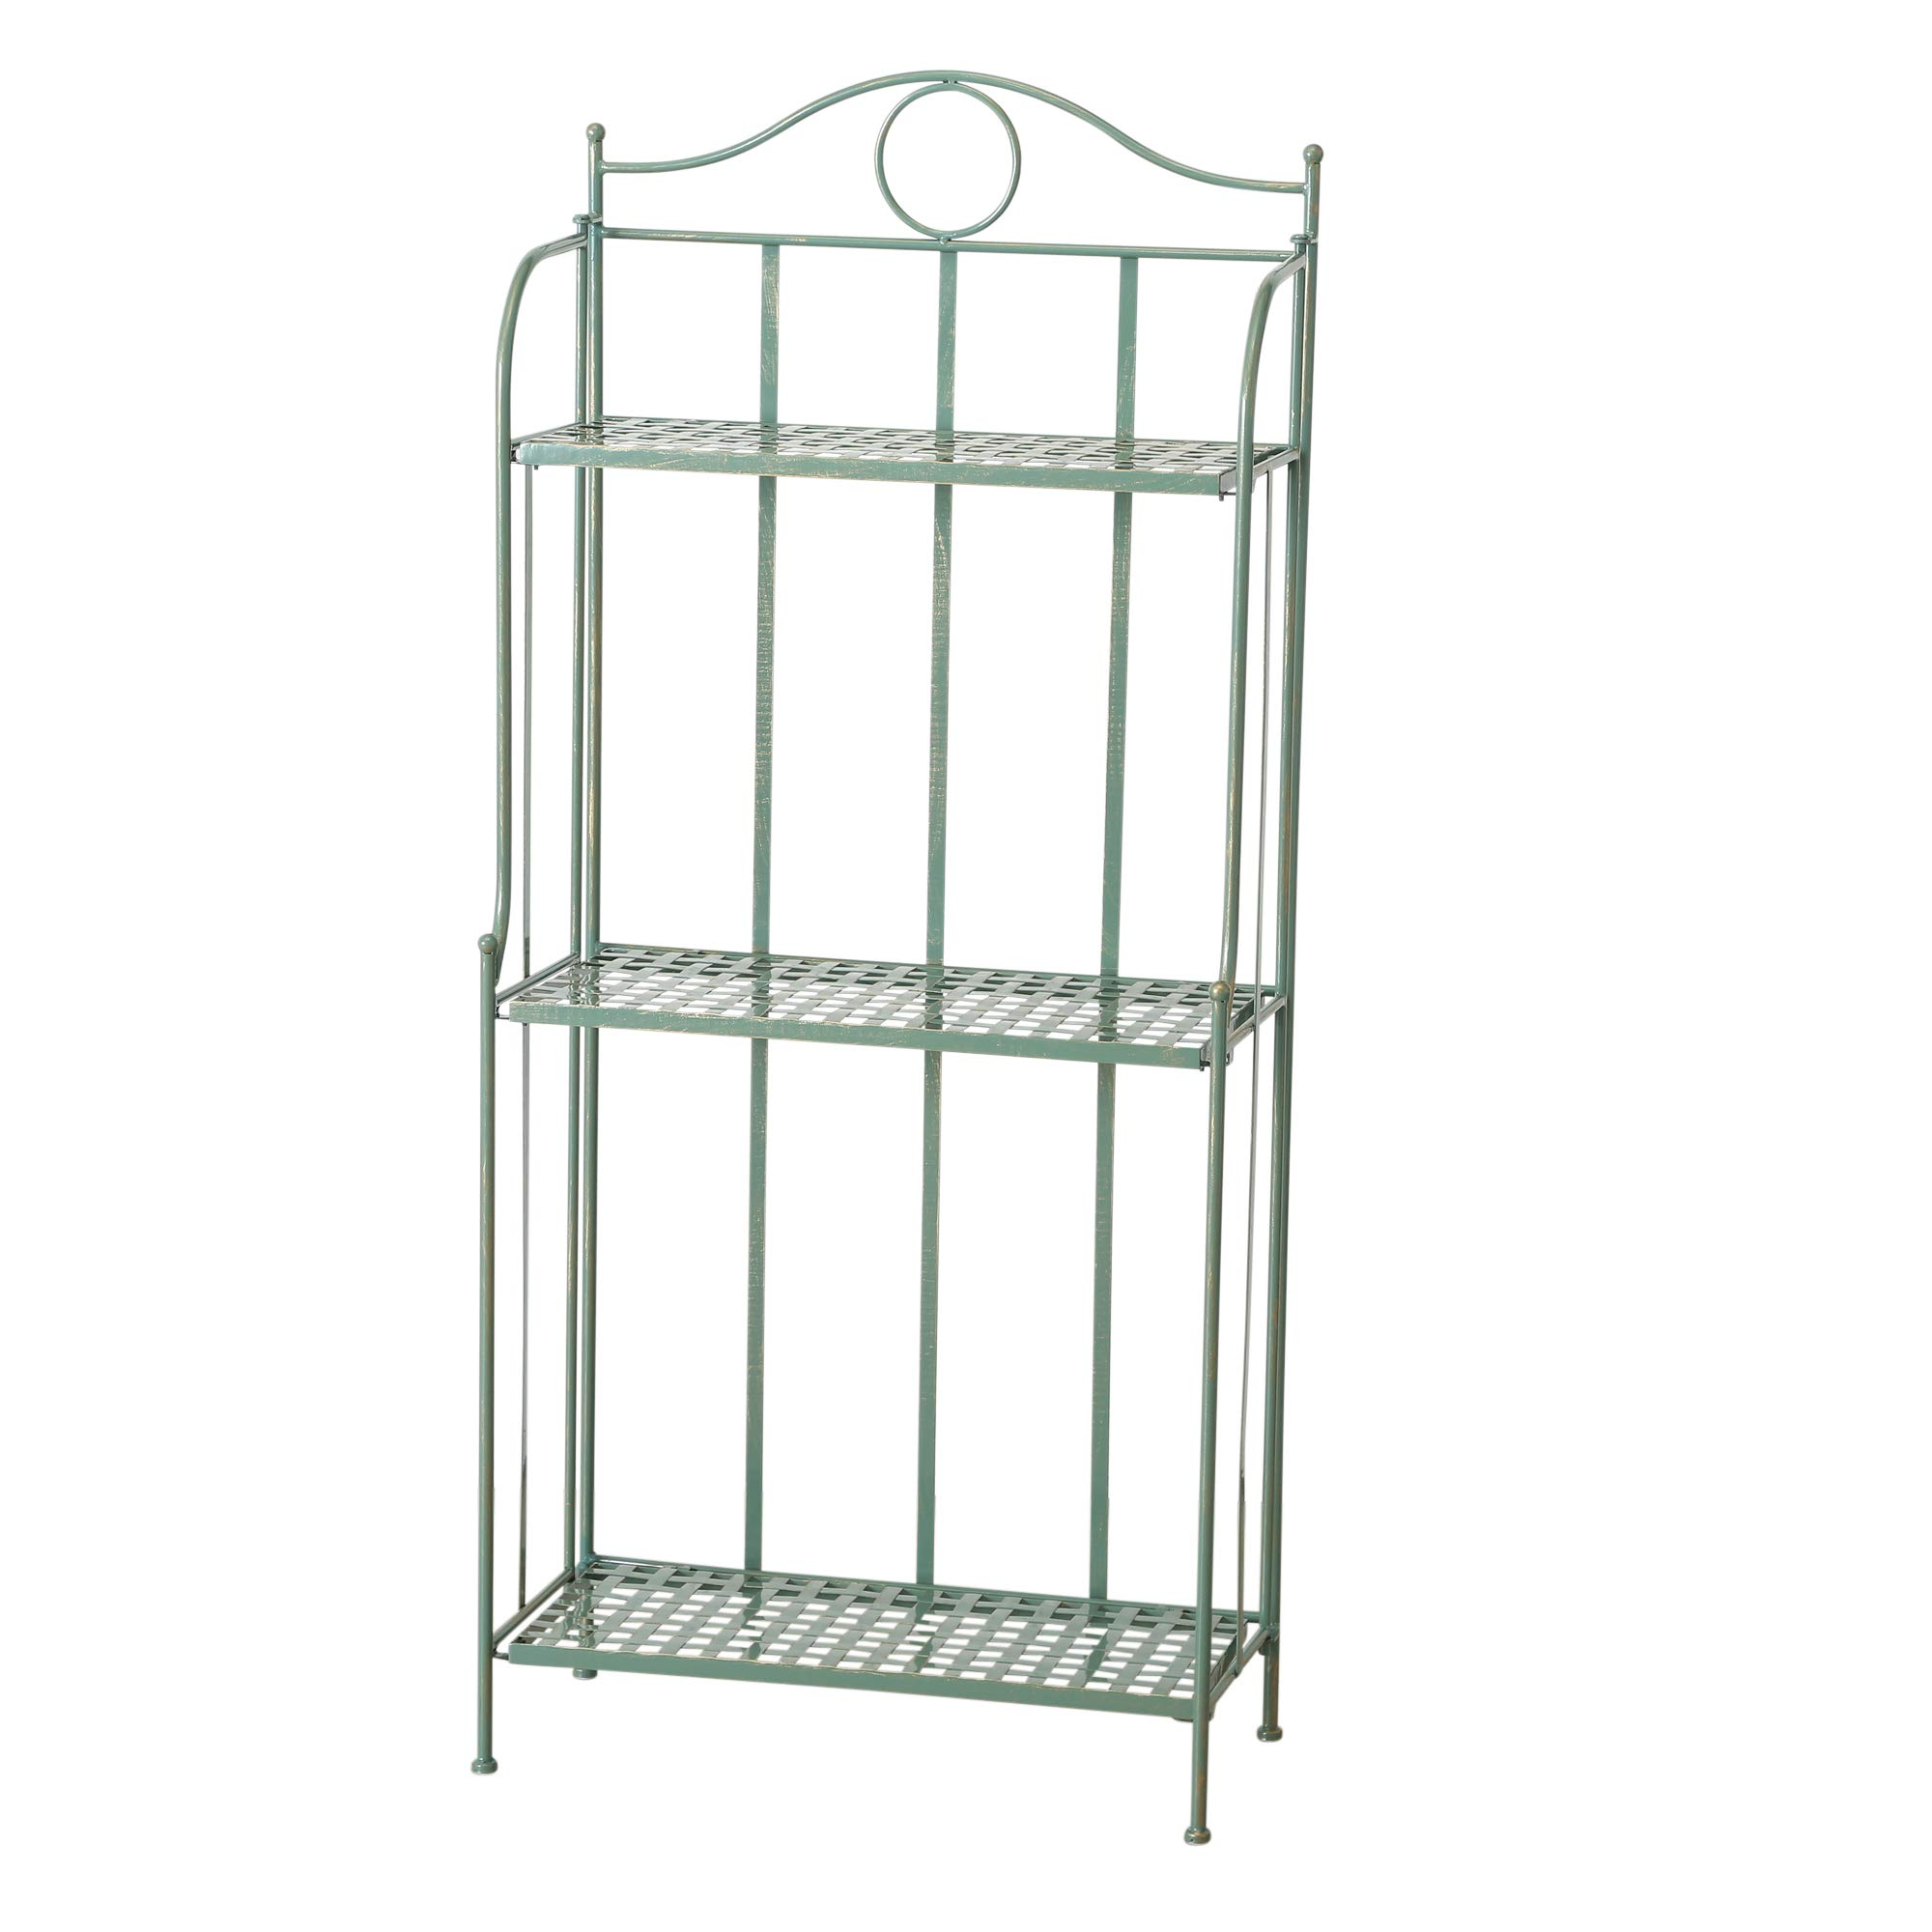 Charlton Street Bakers Rack, 3 Shelves, Rustic Green with Terracotta Undertone, Paint Rubbed Distressing, Vintage French Style, Iron, Woven Details, Folding, Indoor Outdoor Use, 4 Feet 7 Inches Tall by WHW Whole House Worlds